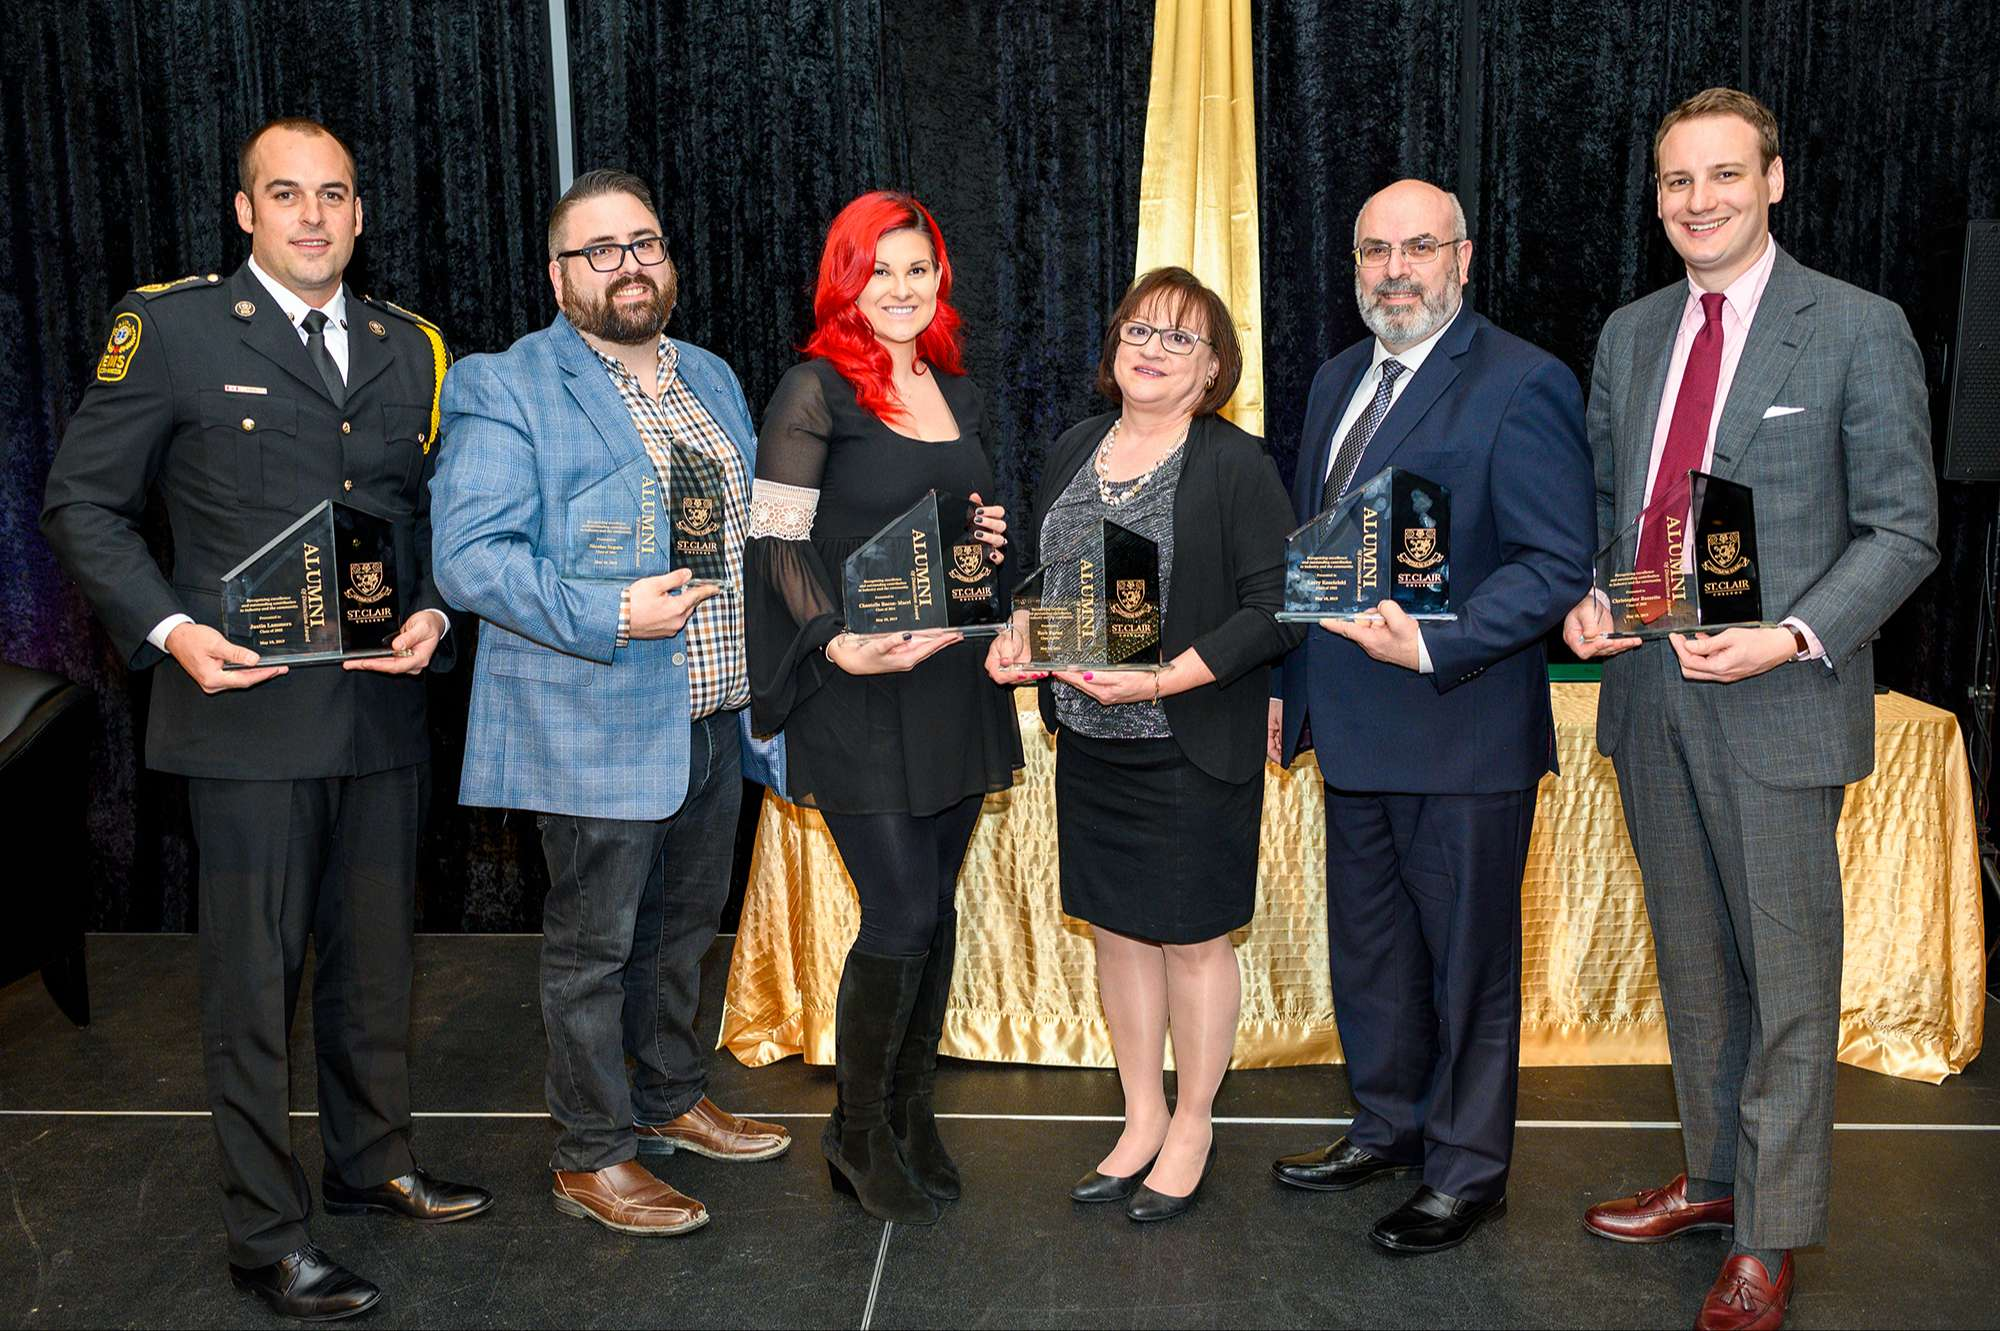 The 2019 alumni of distinction recipients with their trophy's.